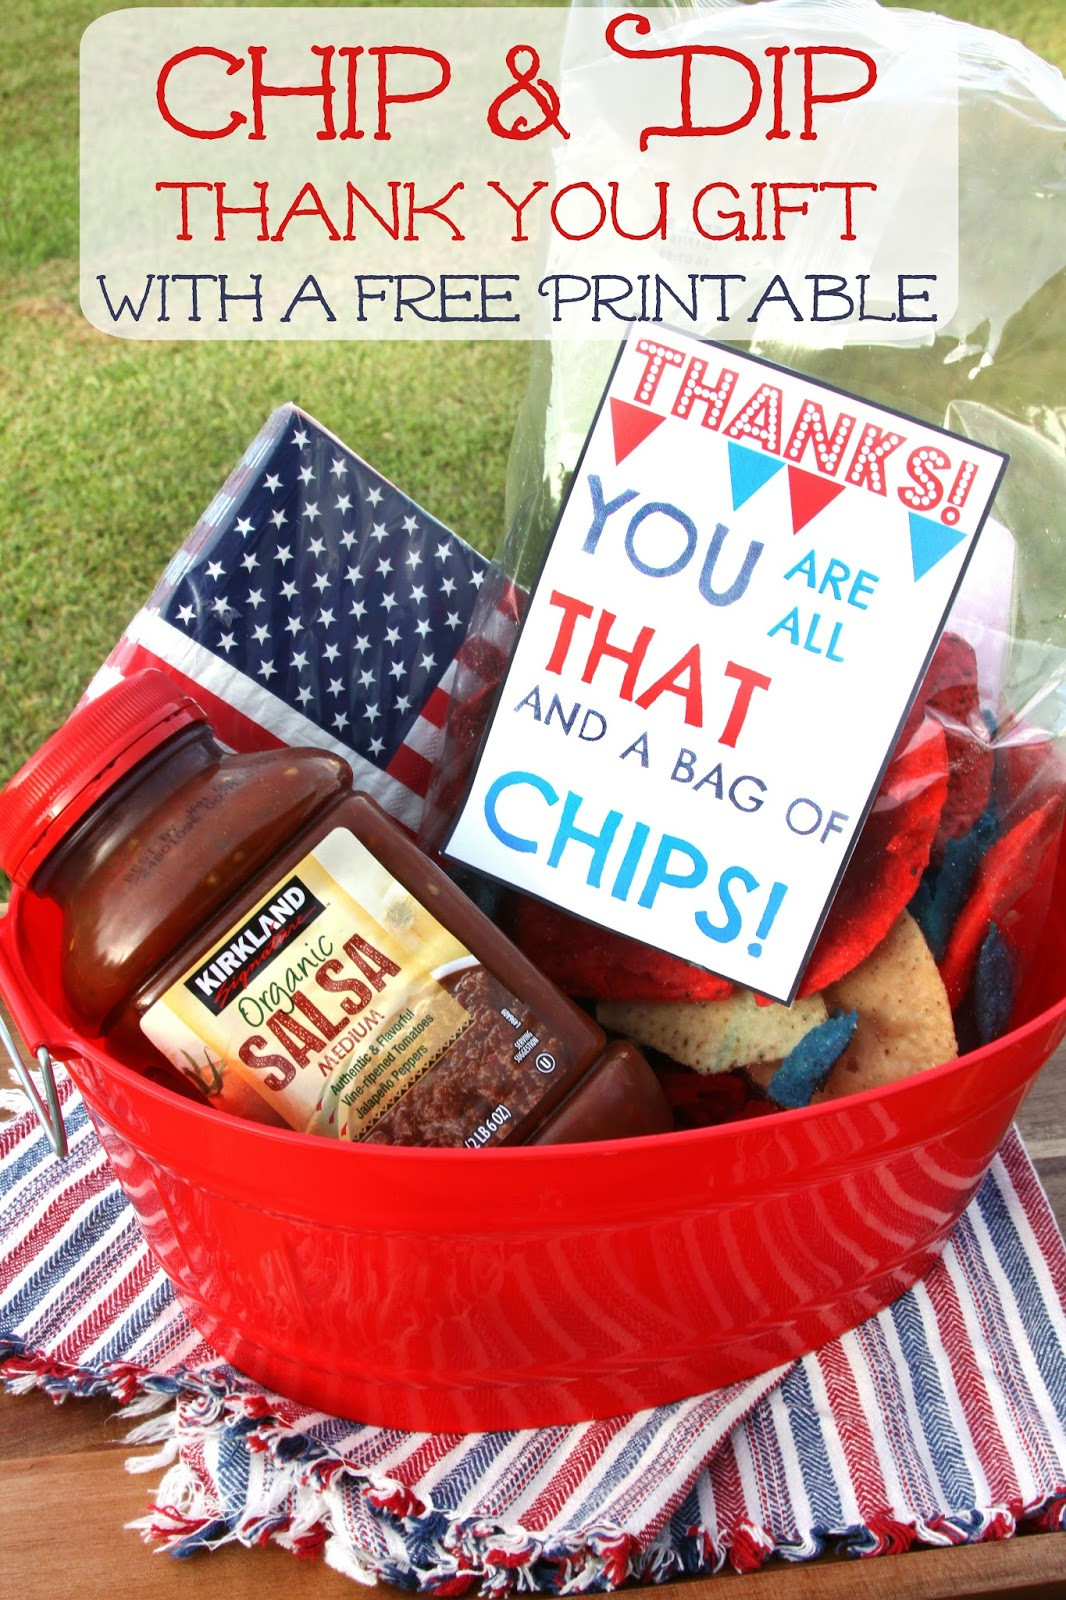 Thank You Gift Baskets Ideas  For the Love of Food Chip and Dip Thank You Basket